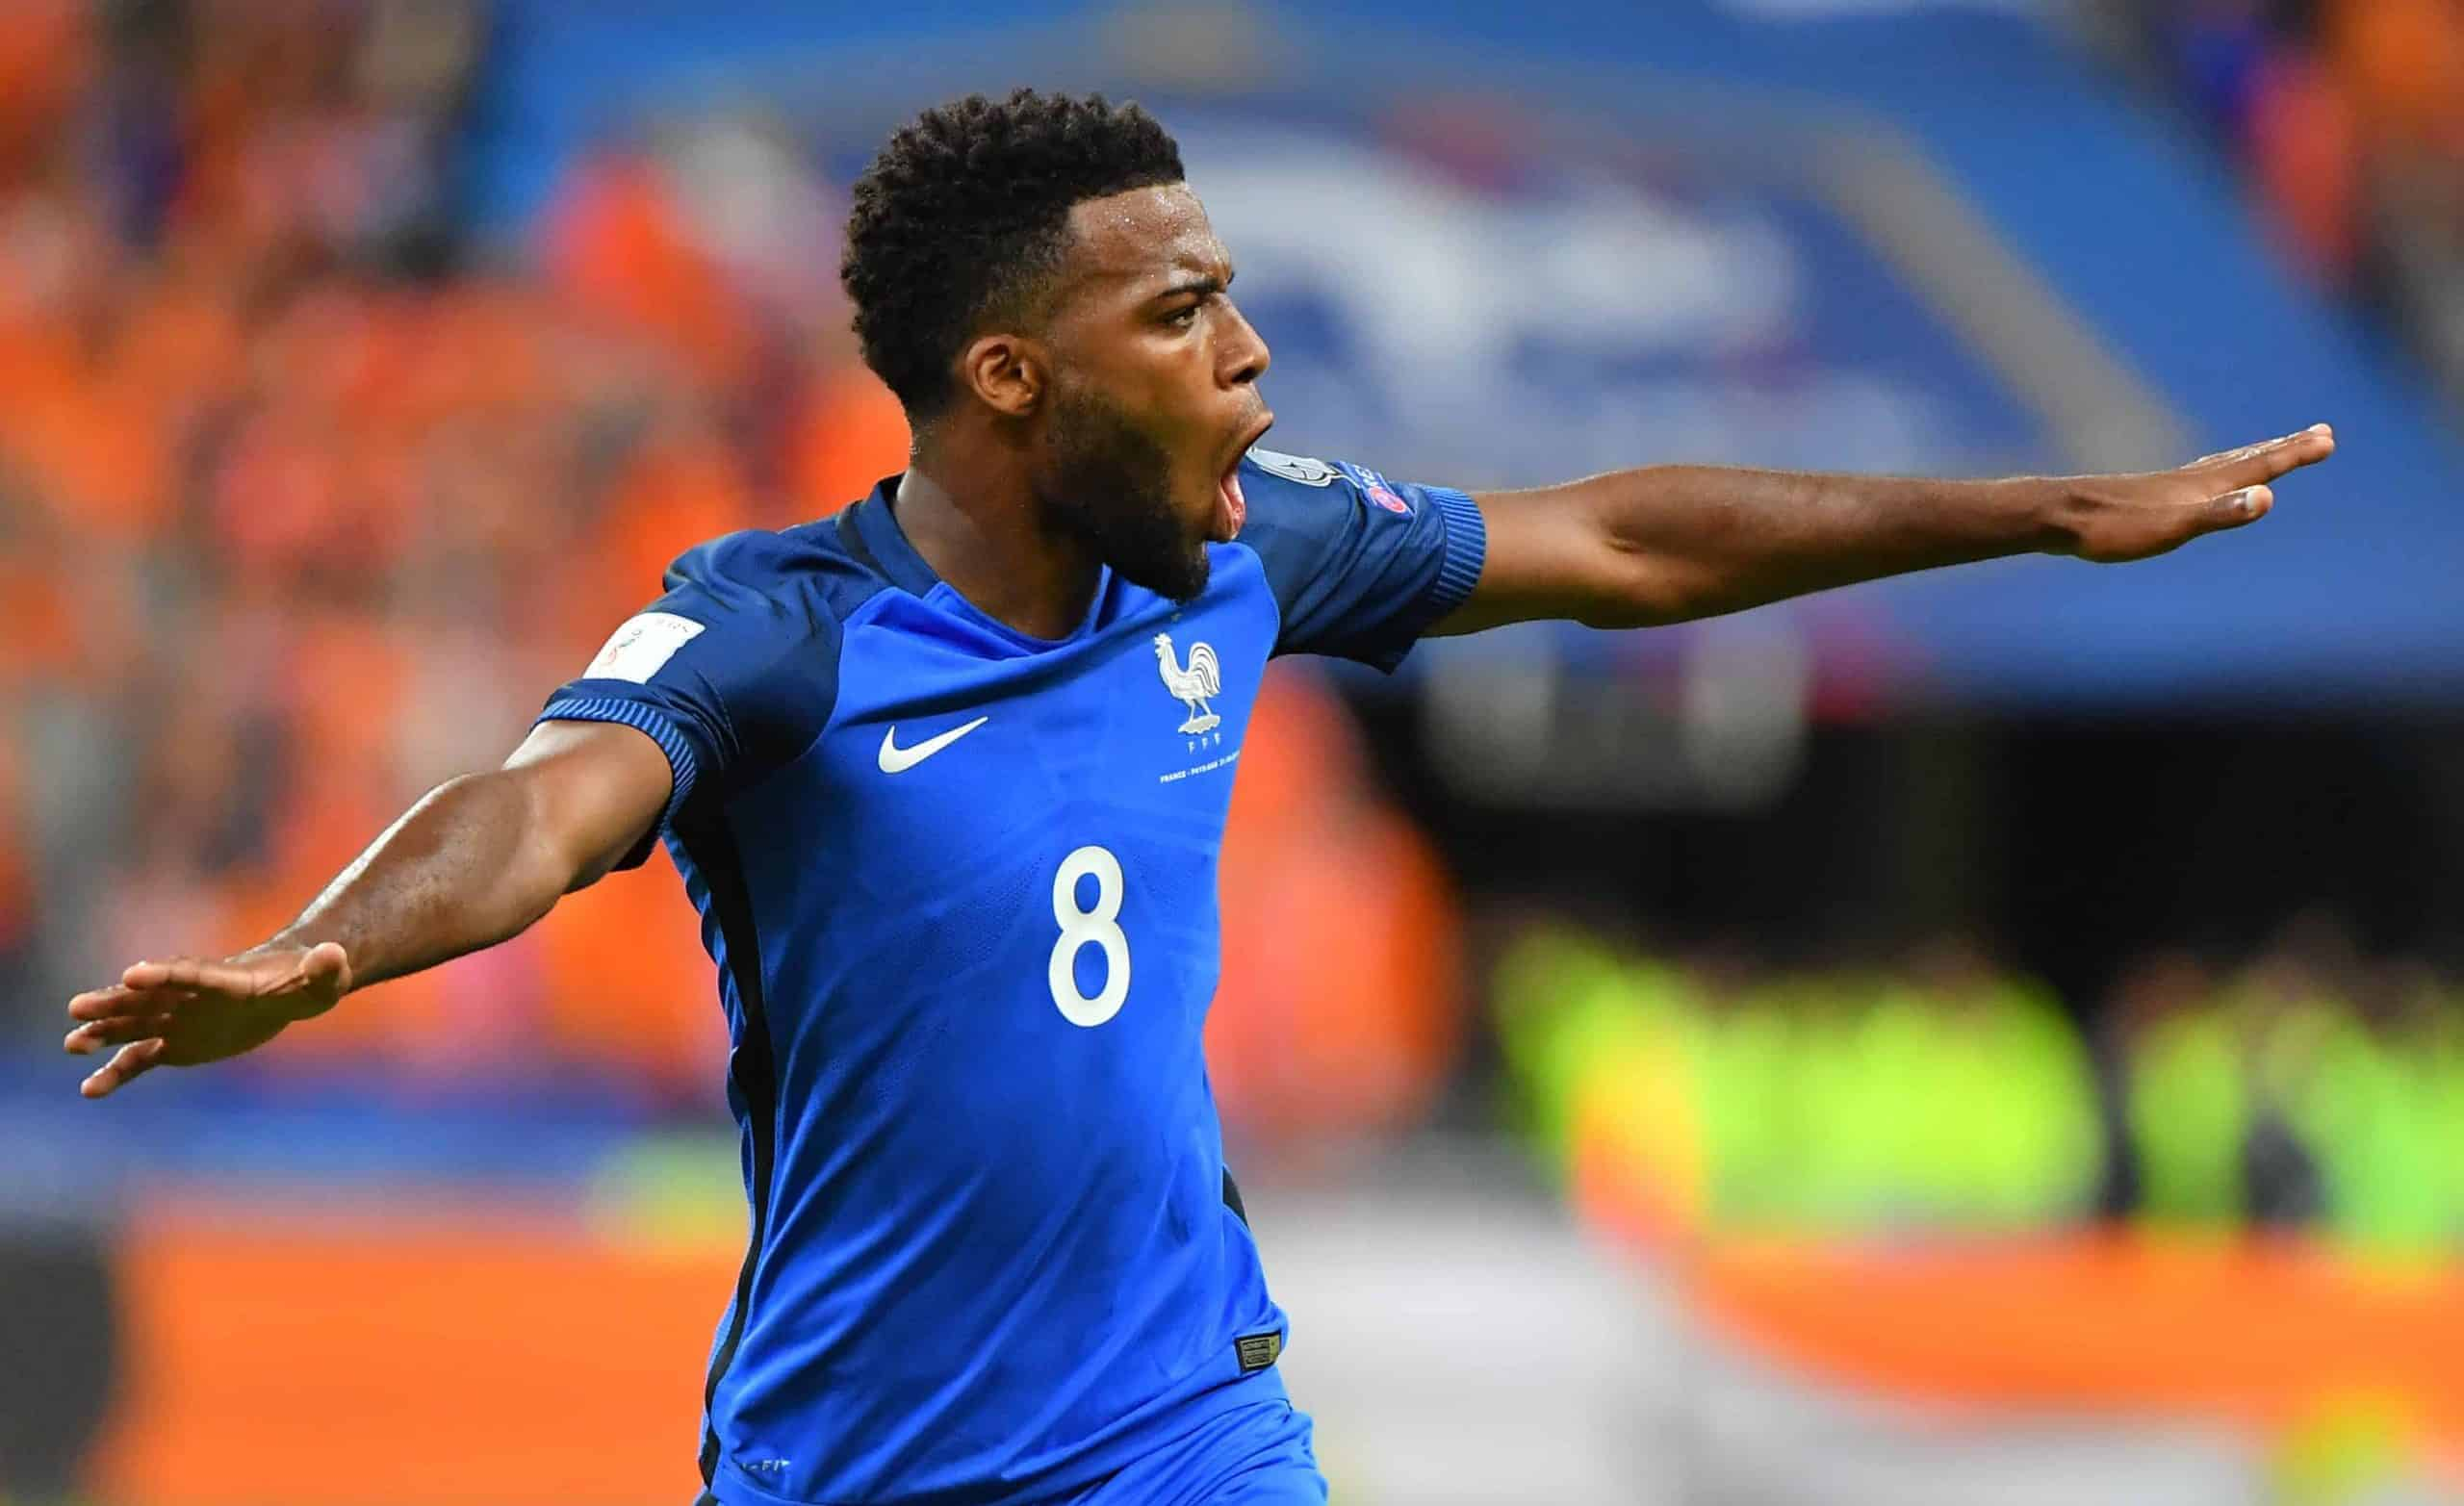 France's Goal and Joy Thomas lemar during the France vs Netherlands 2018 FIFA World Cup Russia Qualifying Match at State de France stadium in Saint-Denis, near Paris, France on August 31, 2017. France won 4-0. Photo by Christian Liewig/ABACAPRESS.COM